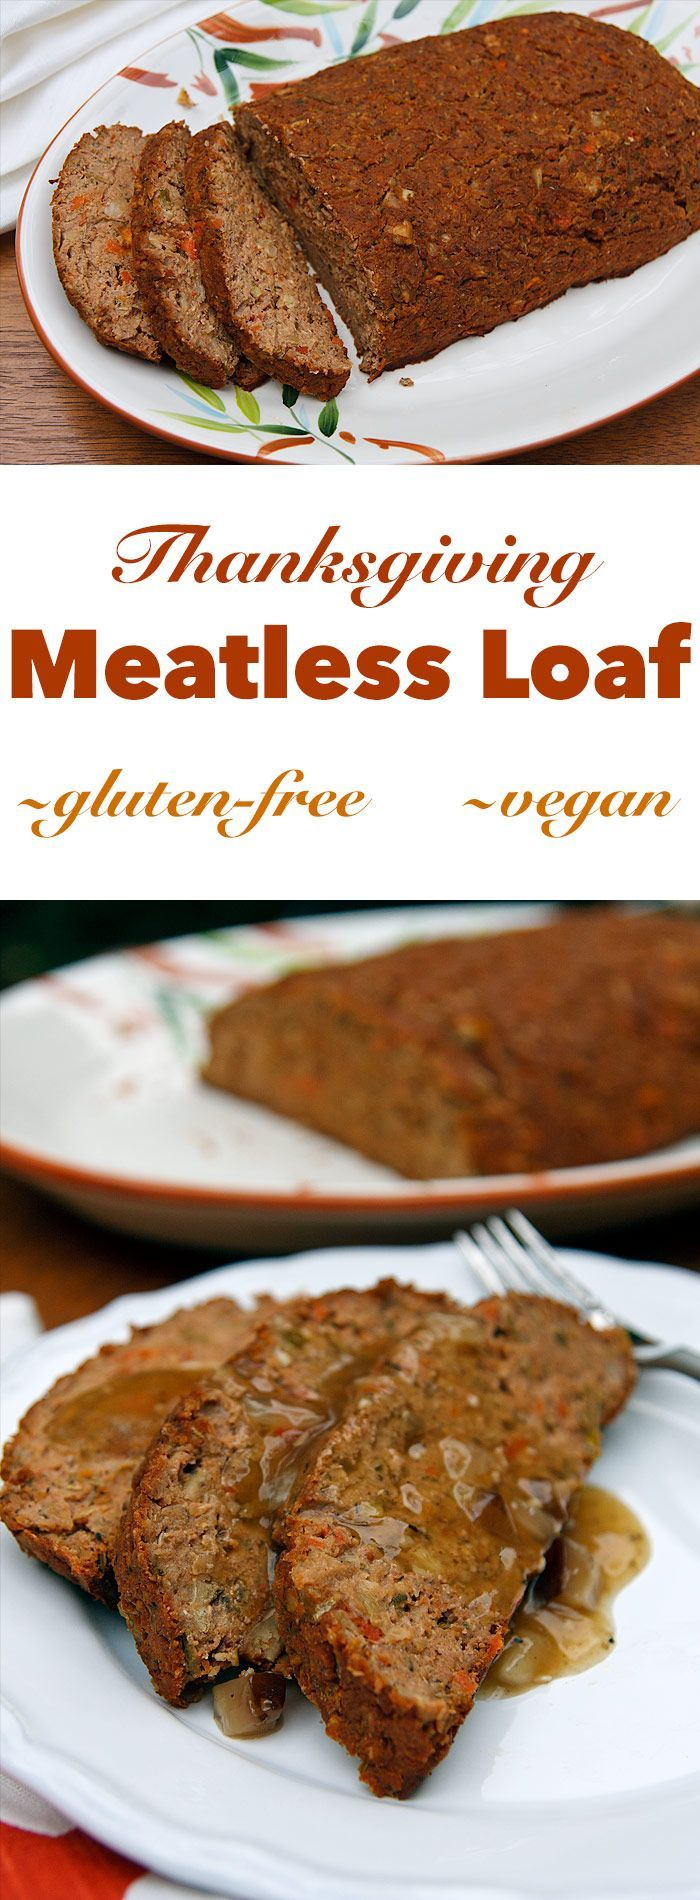 Meatless,GF, &  vegan loaf is so moist and flavorful that you won't need stuffing or even gravy. It's gluten-free and soy-free, too!